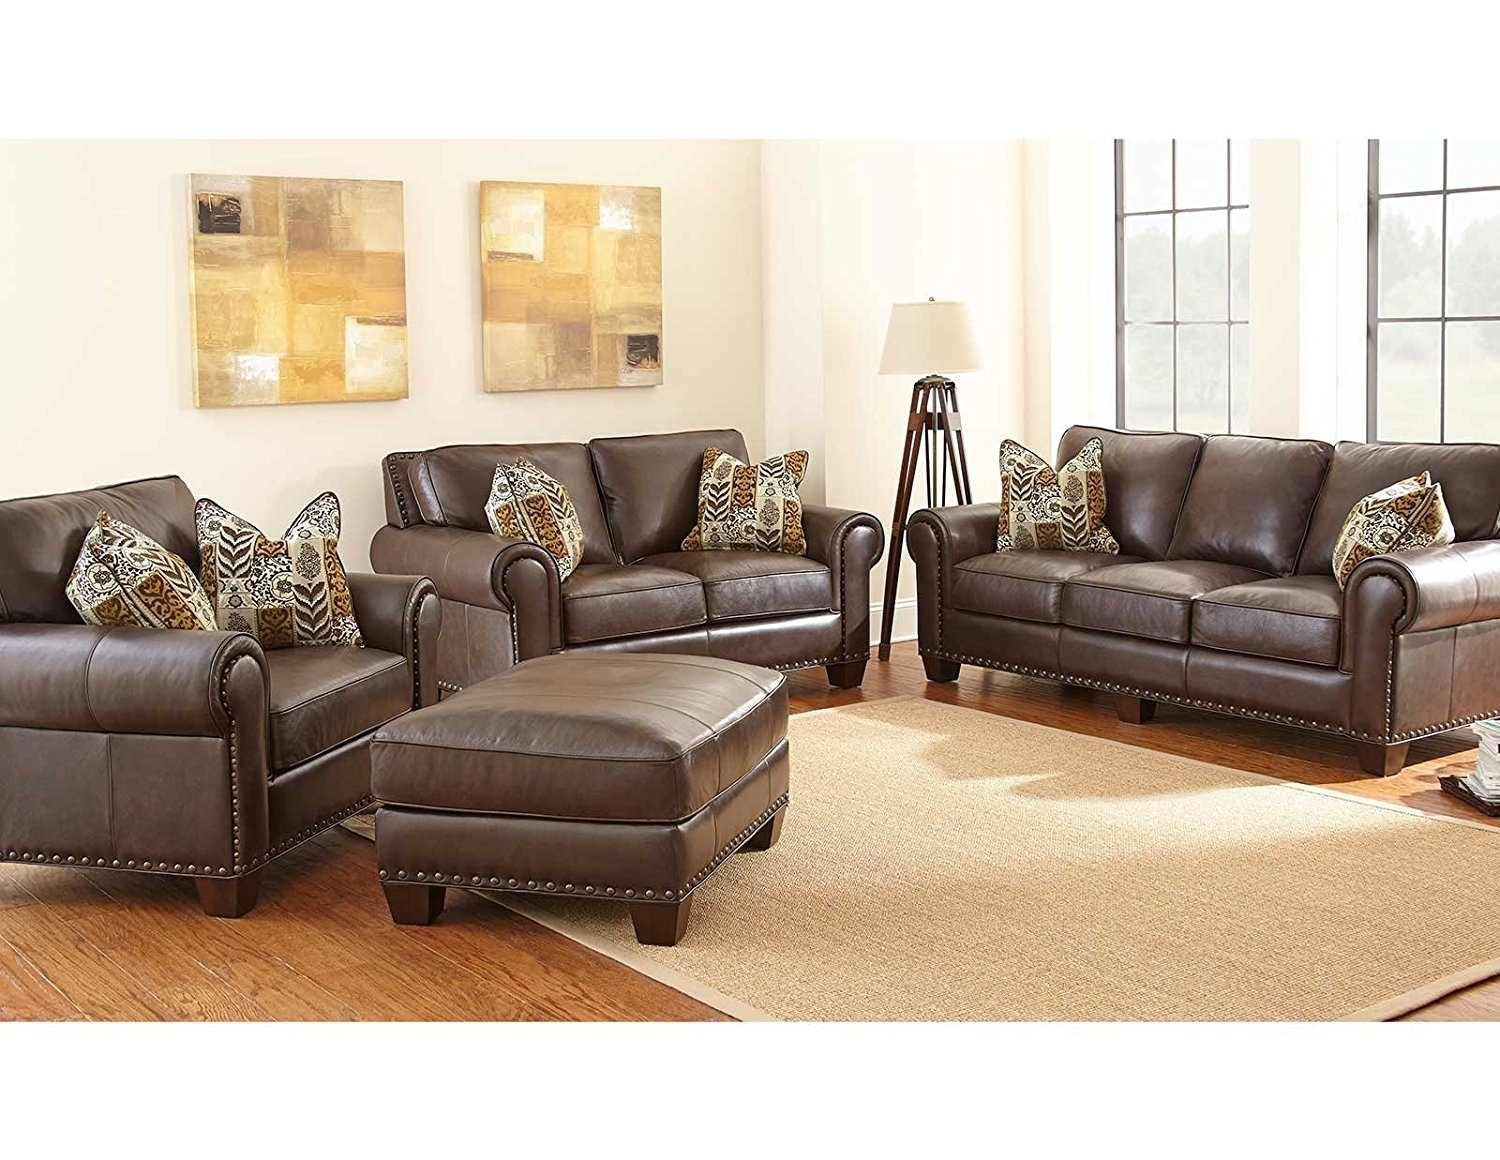 Livingroom : Winning Sofa Layout Living Room Sofas Seat Set Online inside Sears Sectional Sofas (Image 7 of 10)